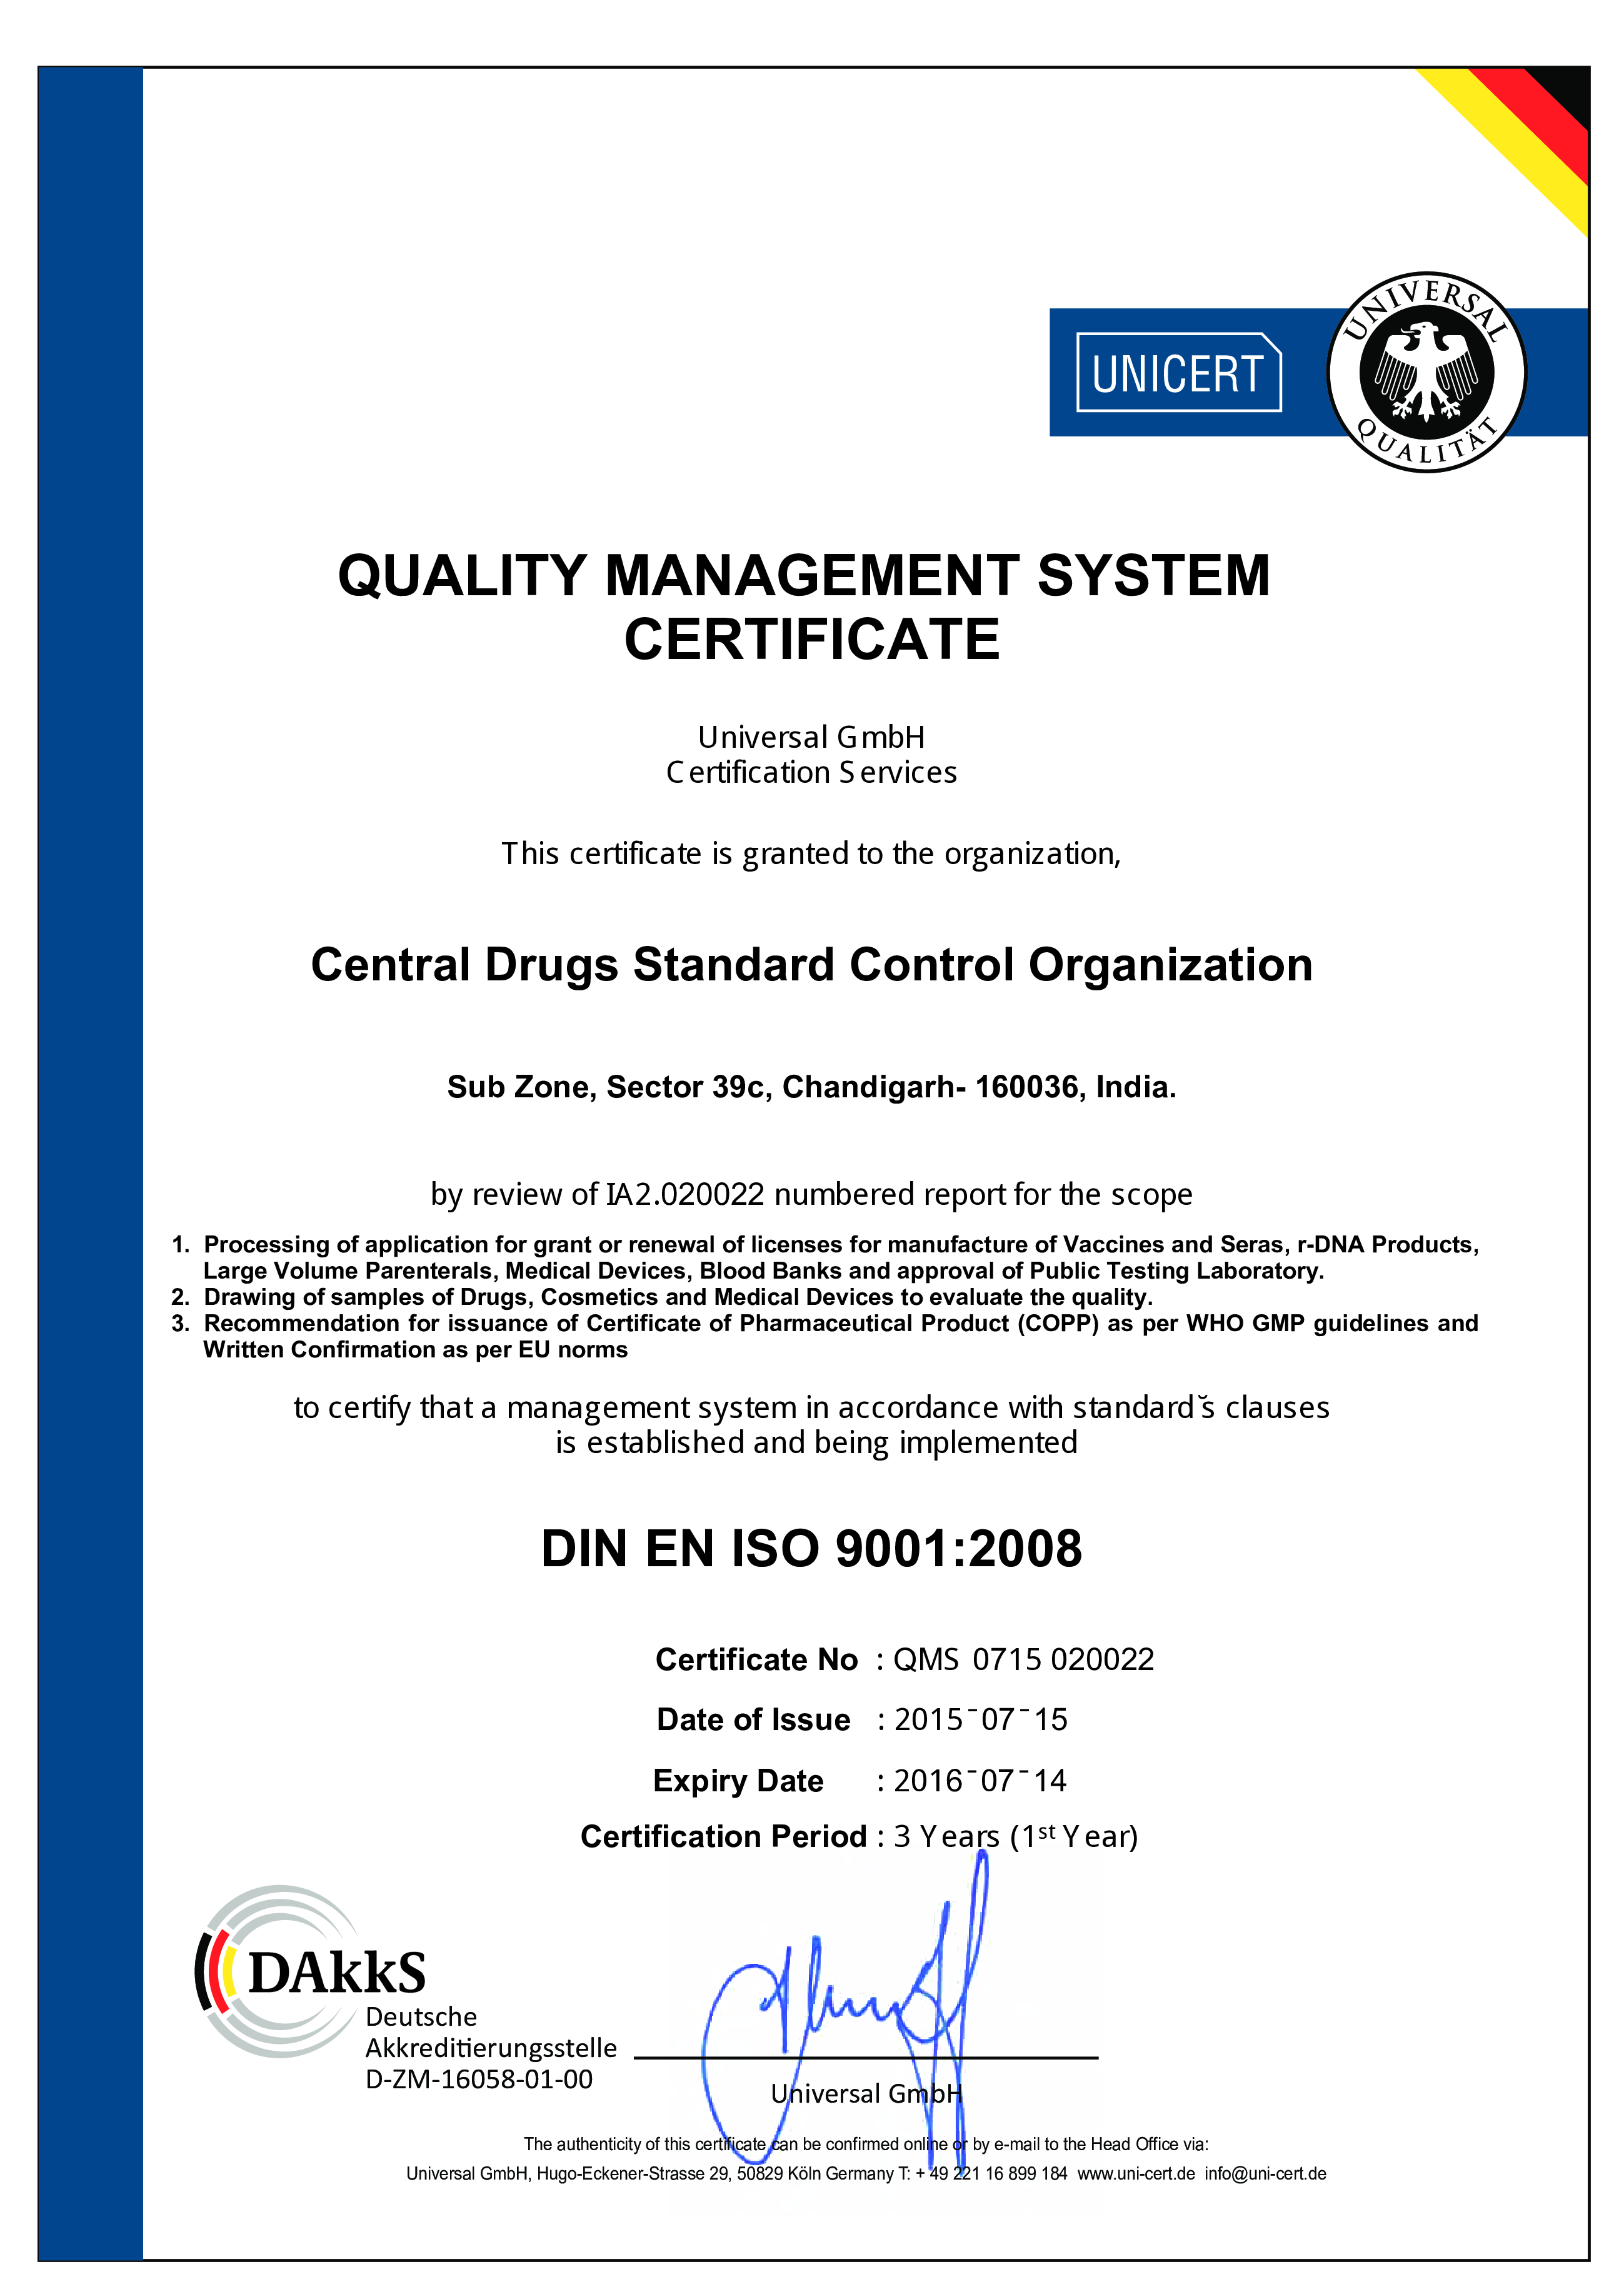 Quality Management System Certificate | Templates at ...